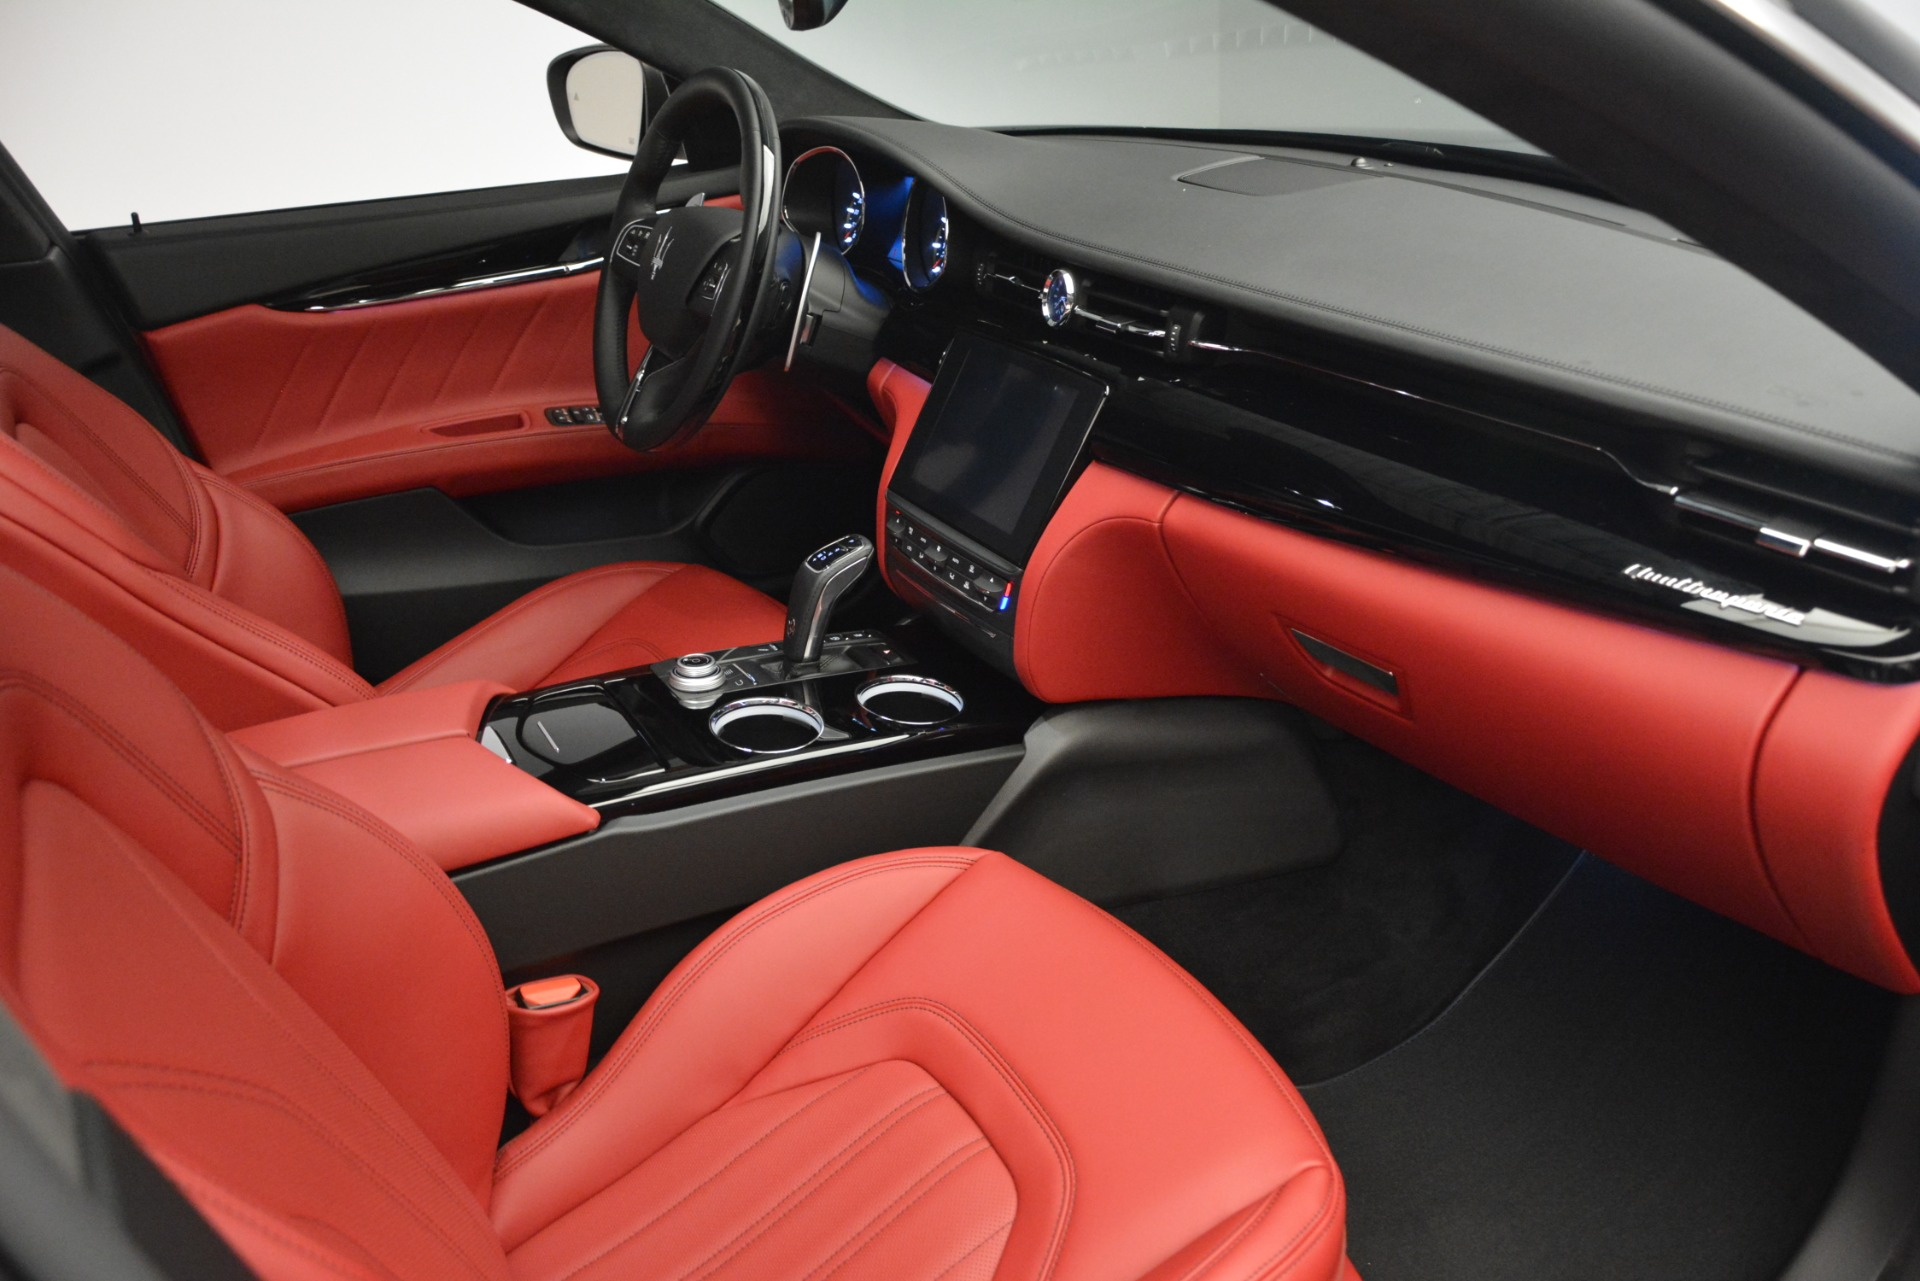 New 2019 Maserati Quattroporte S Q4 GranLusso For Sale In Greenwich, CT 2718_p17